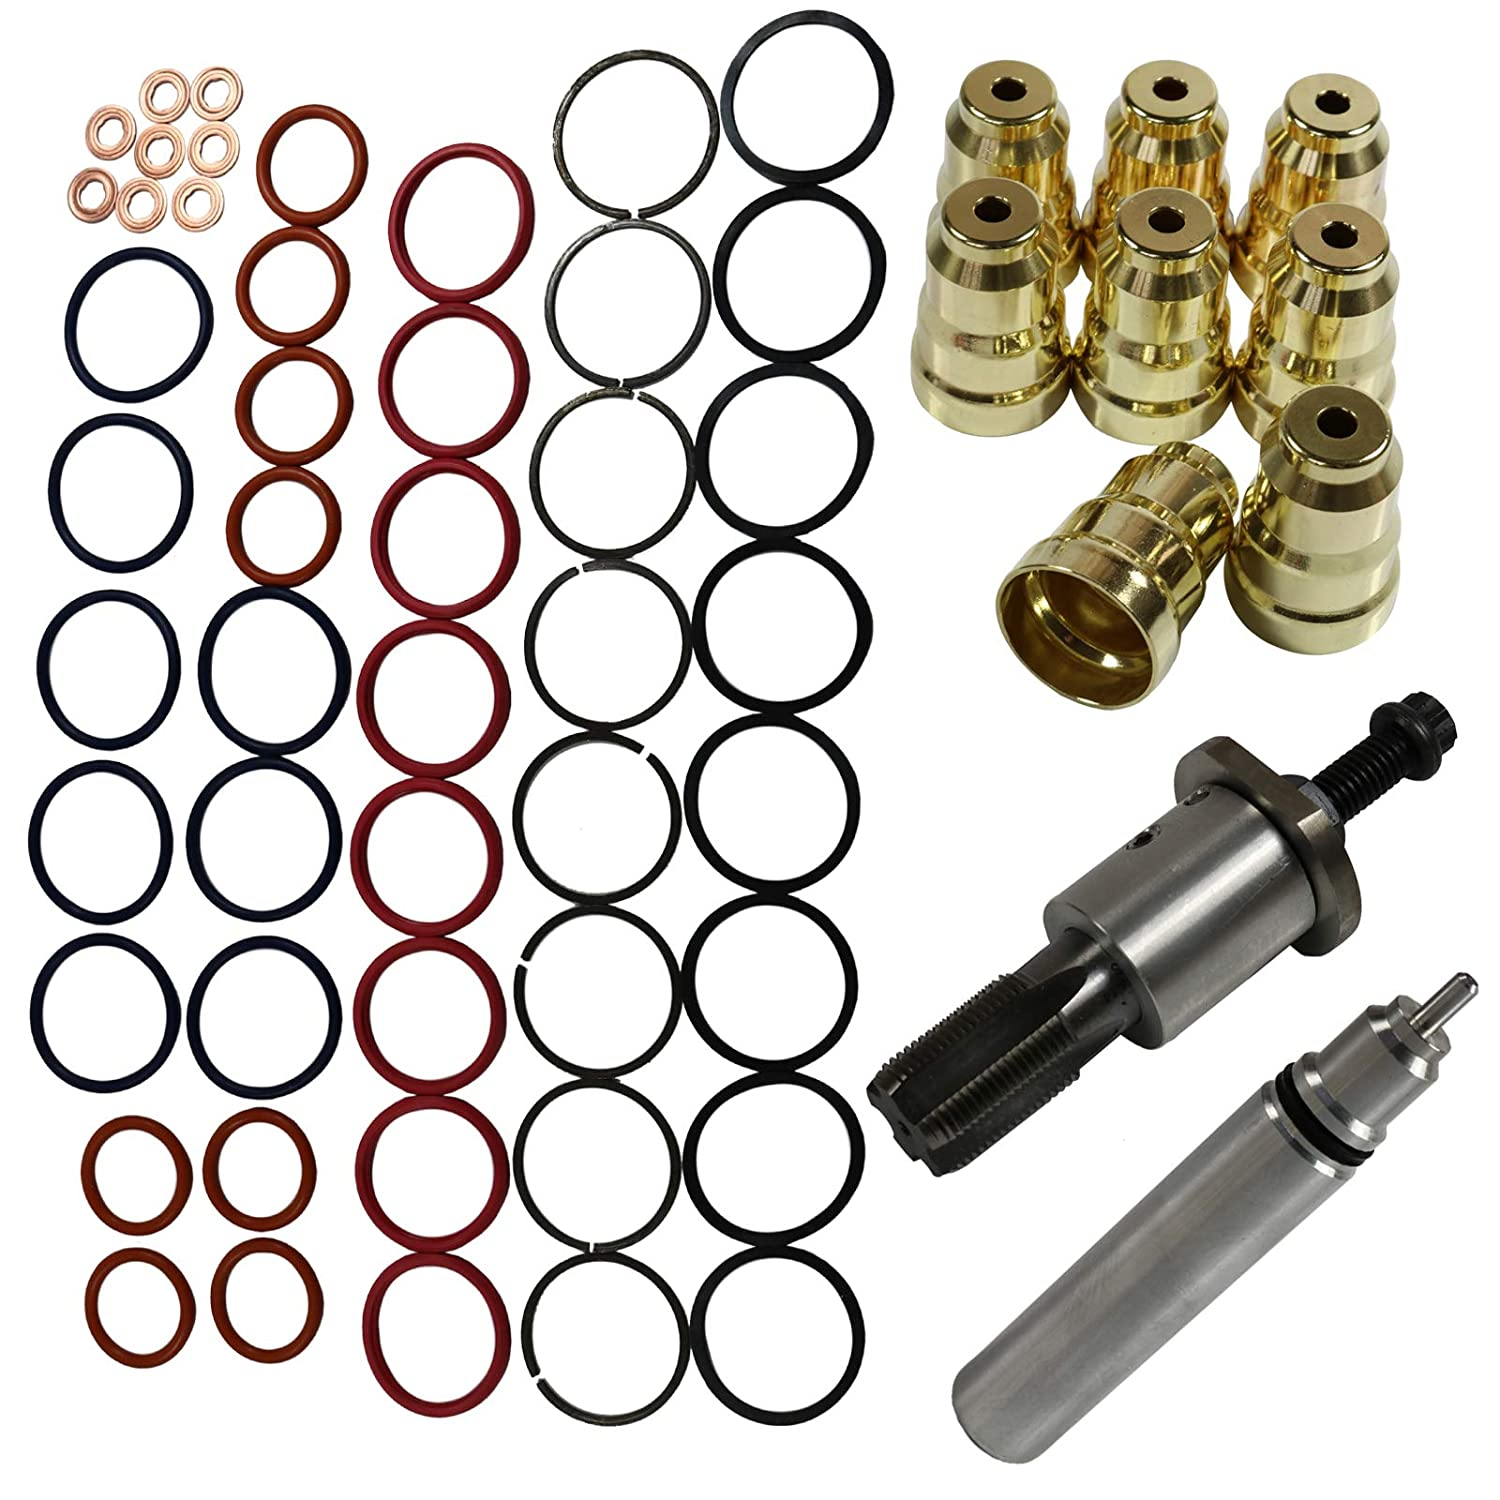 BUSIDN F4TZ9F538A Injector Sleeve Cup Removal Installation Tool Kit Fit For 94-03 Ford 7.3L